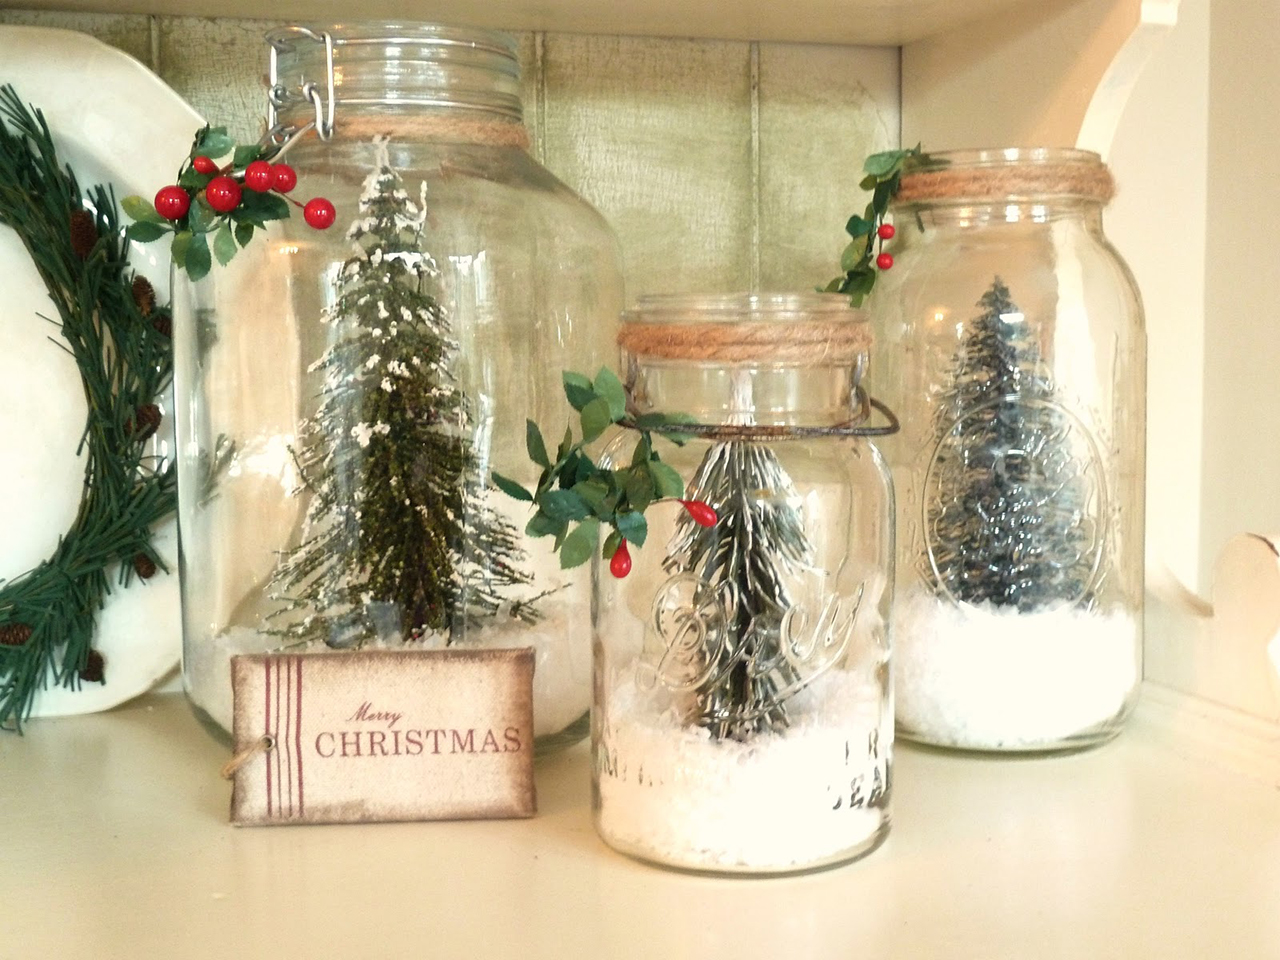 50 Best Indoor Decoration Ideas for Christmas in 2018 DIY Christmas Snow Globes